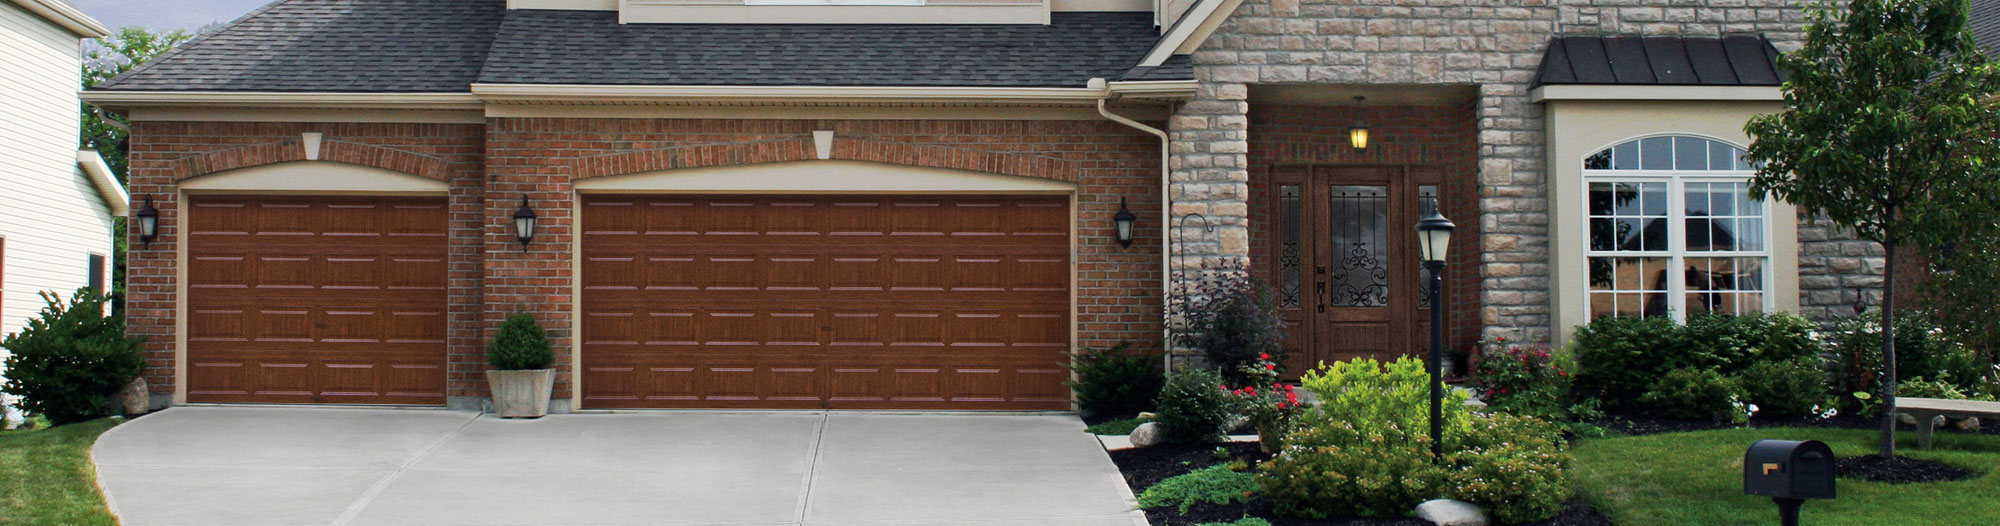 Garage Door Types We Sell The Best And Service The Rest